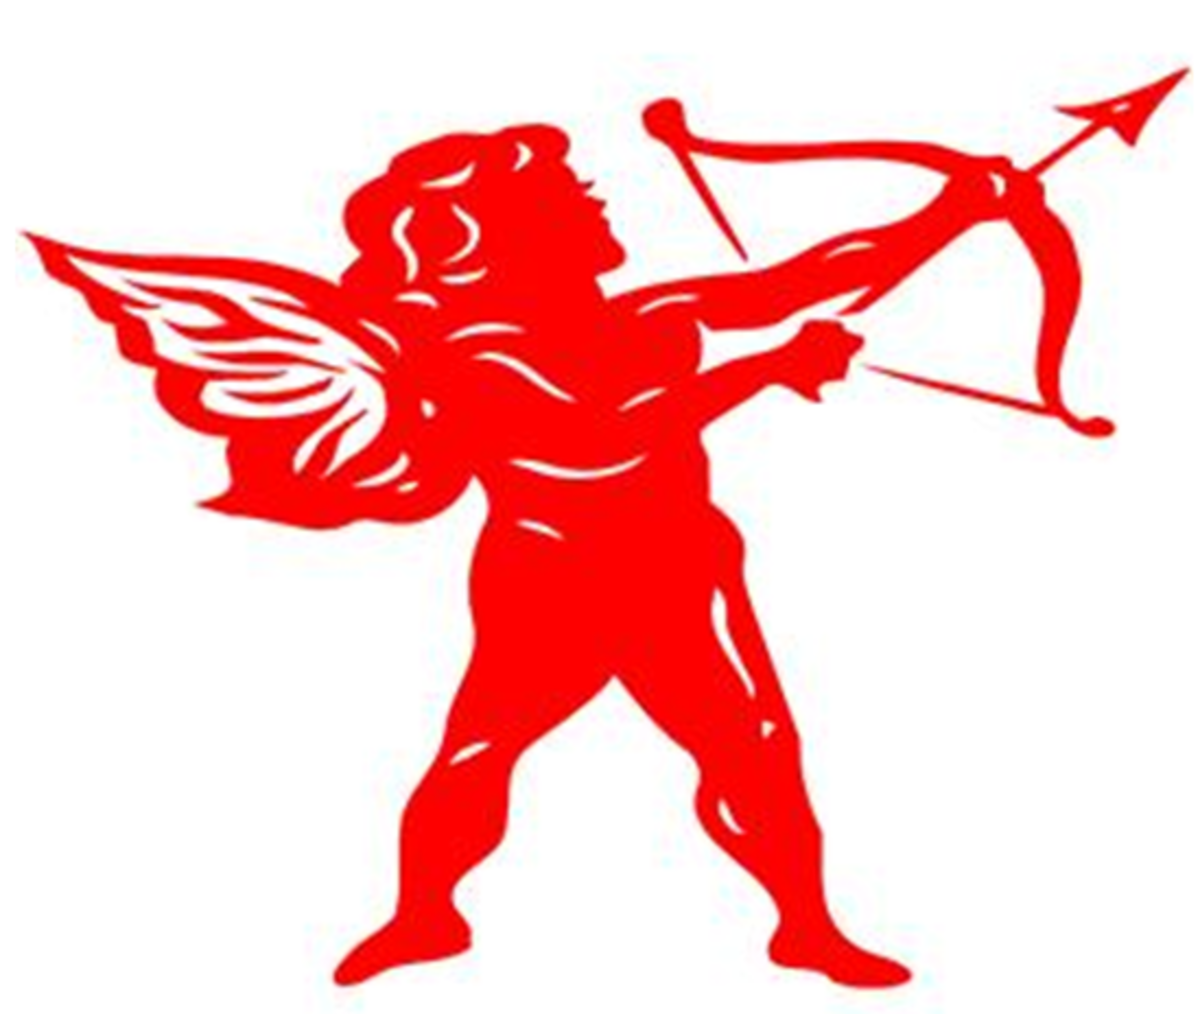 Classic Red Cupid Image